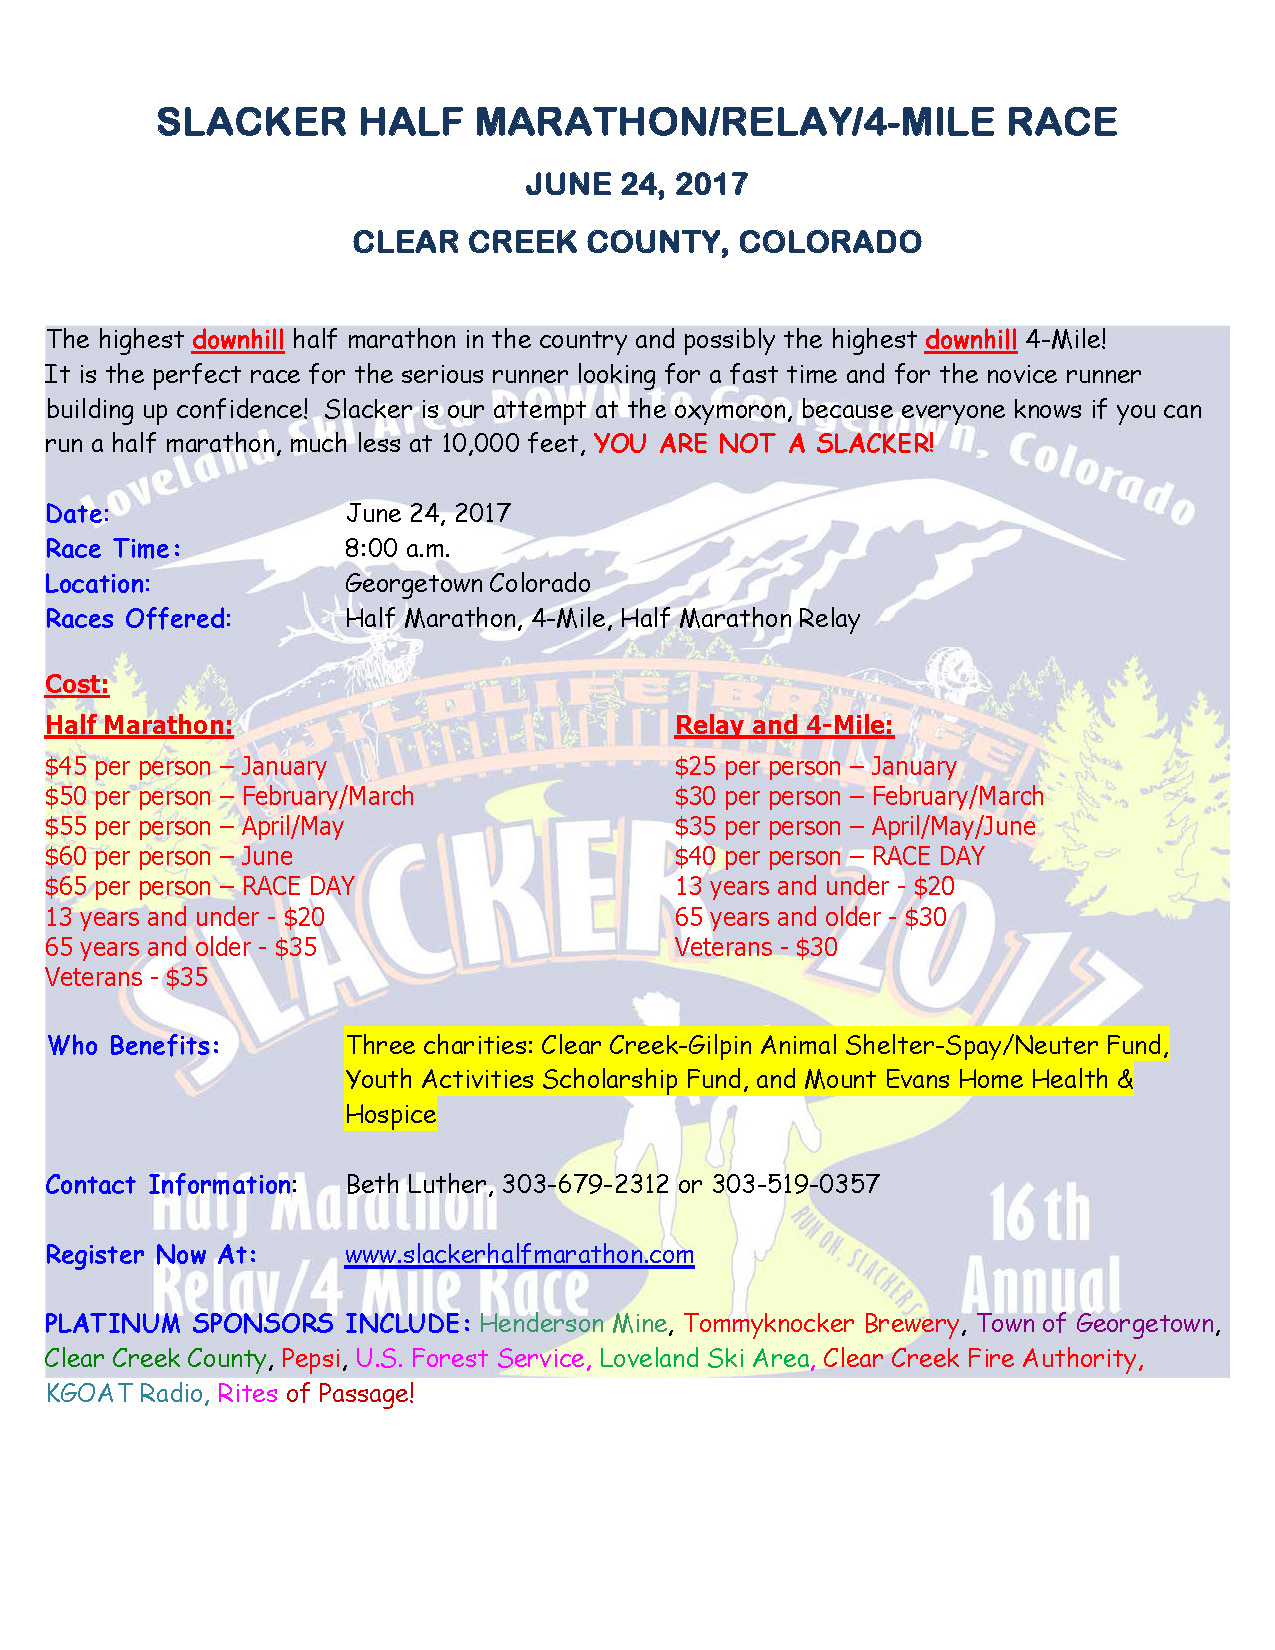 Clear Creek County CO ficial Website